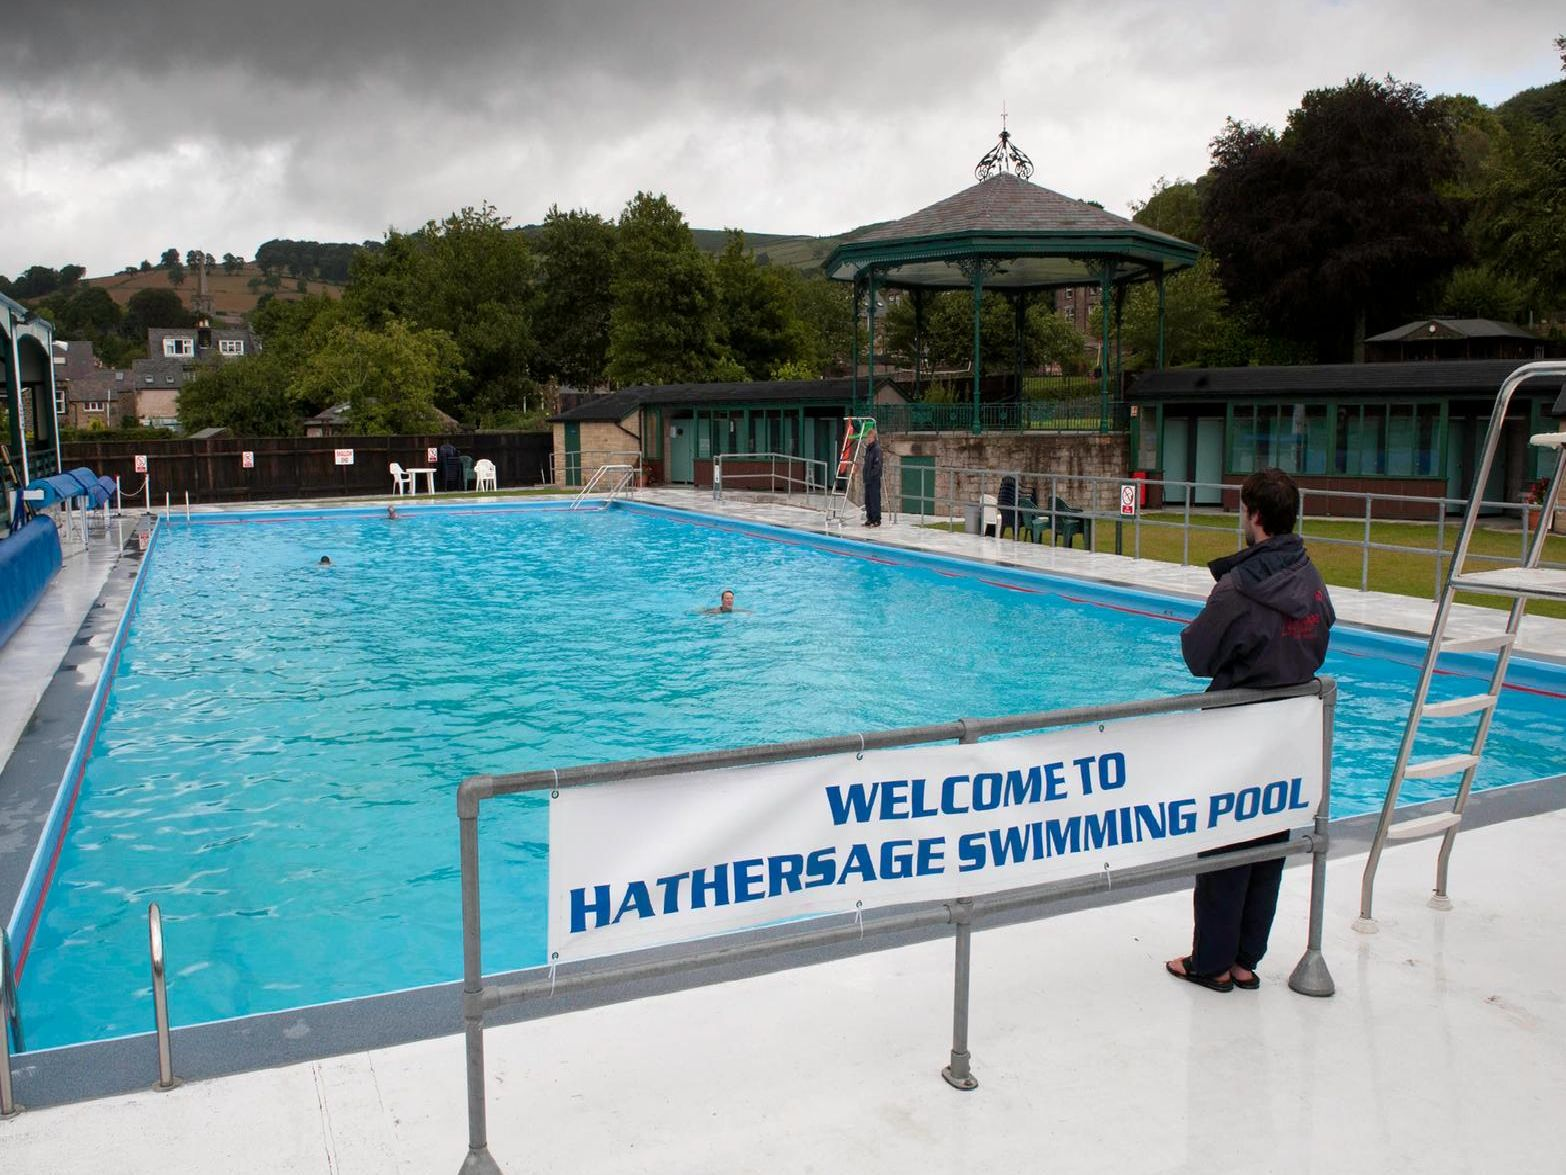 Hathersage Pool opened in 1936